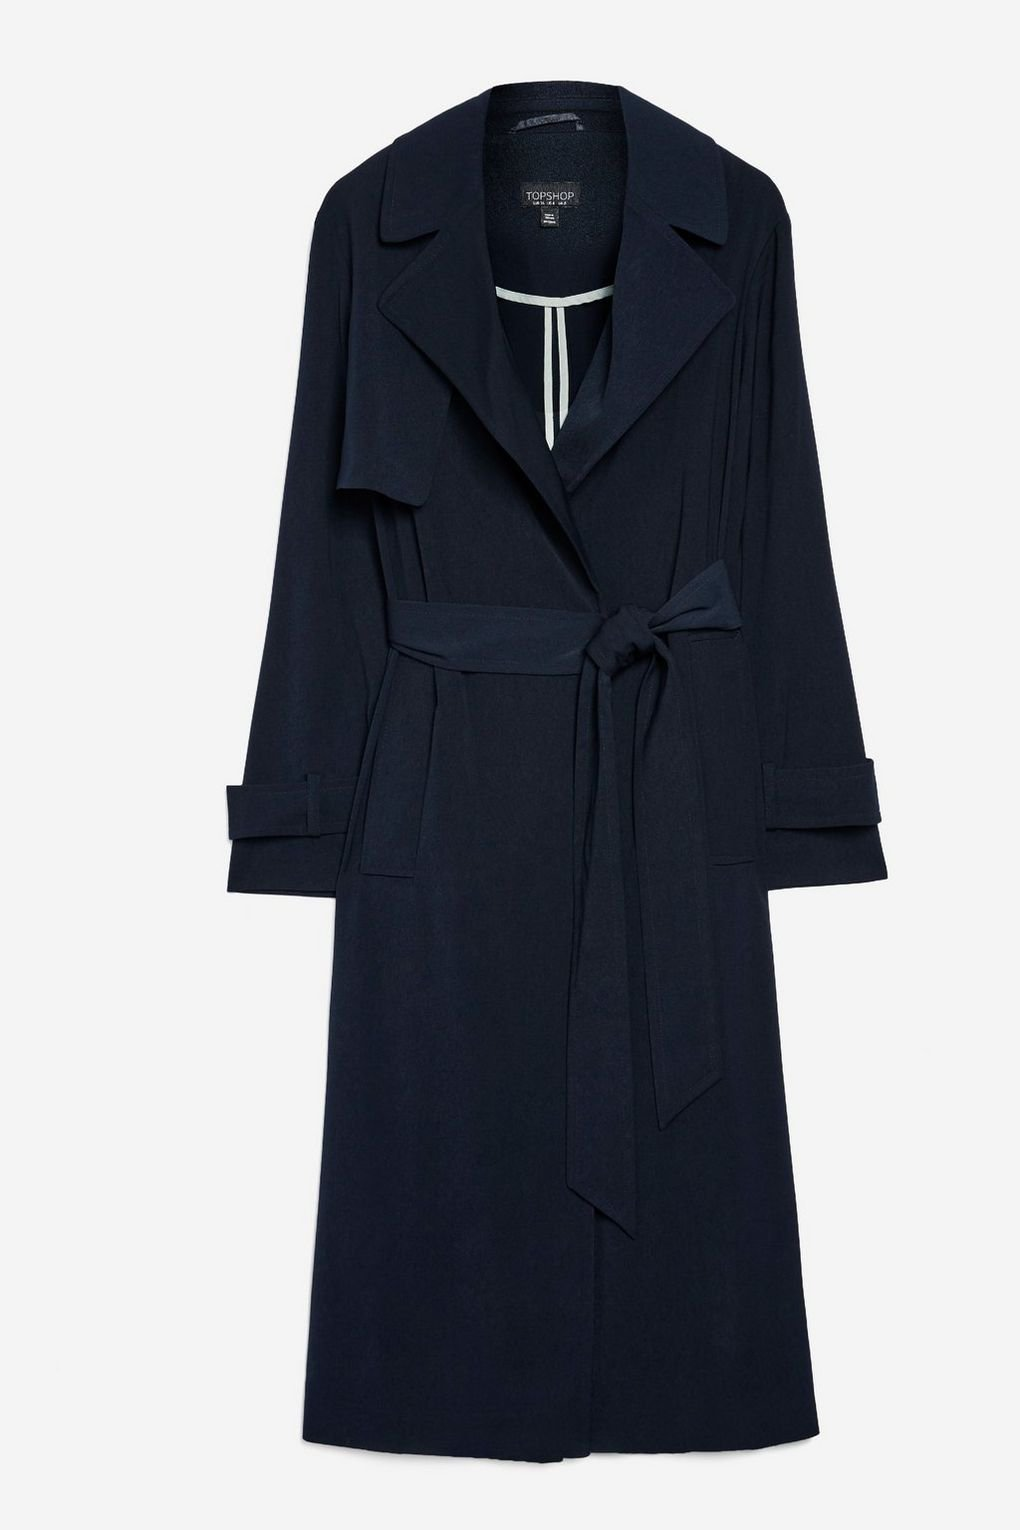 Silky Crepe Duster Coat - Jackets & Coats - Clothing - Topshop USA